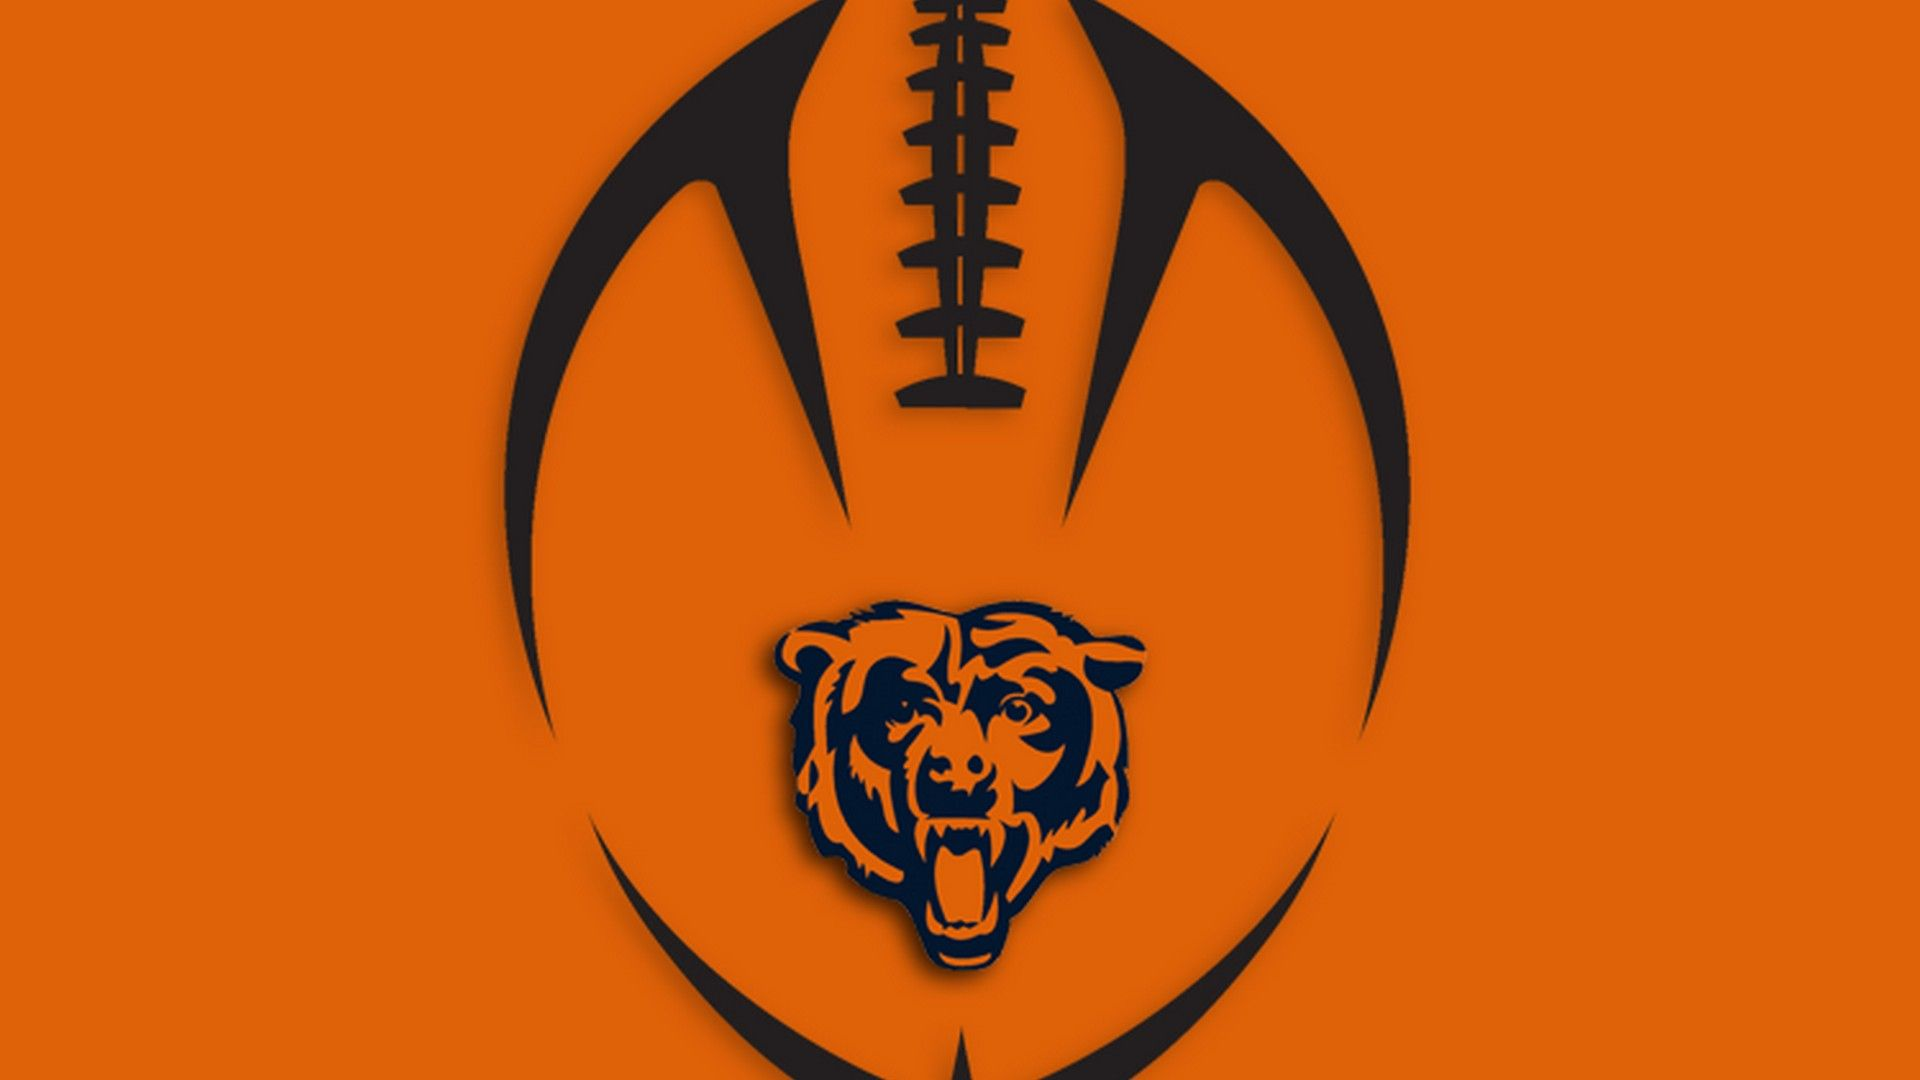 Wallpapers Hd Chicago Bears Nfl Football Wallpaper Chicago Bears Iphone Wallpaper